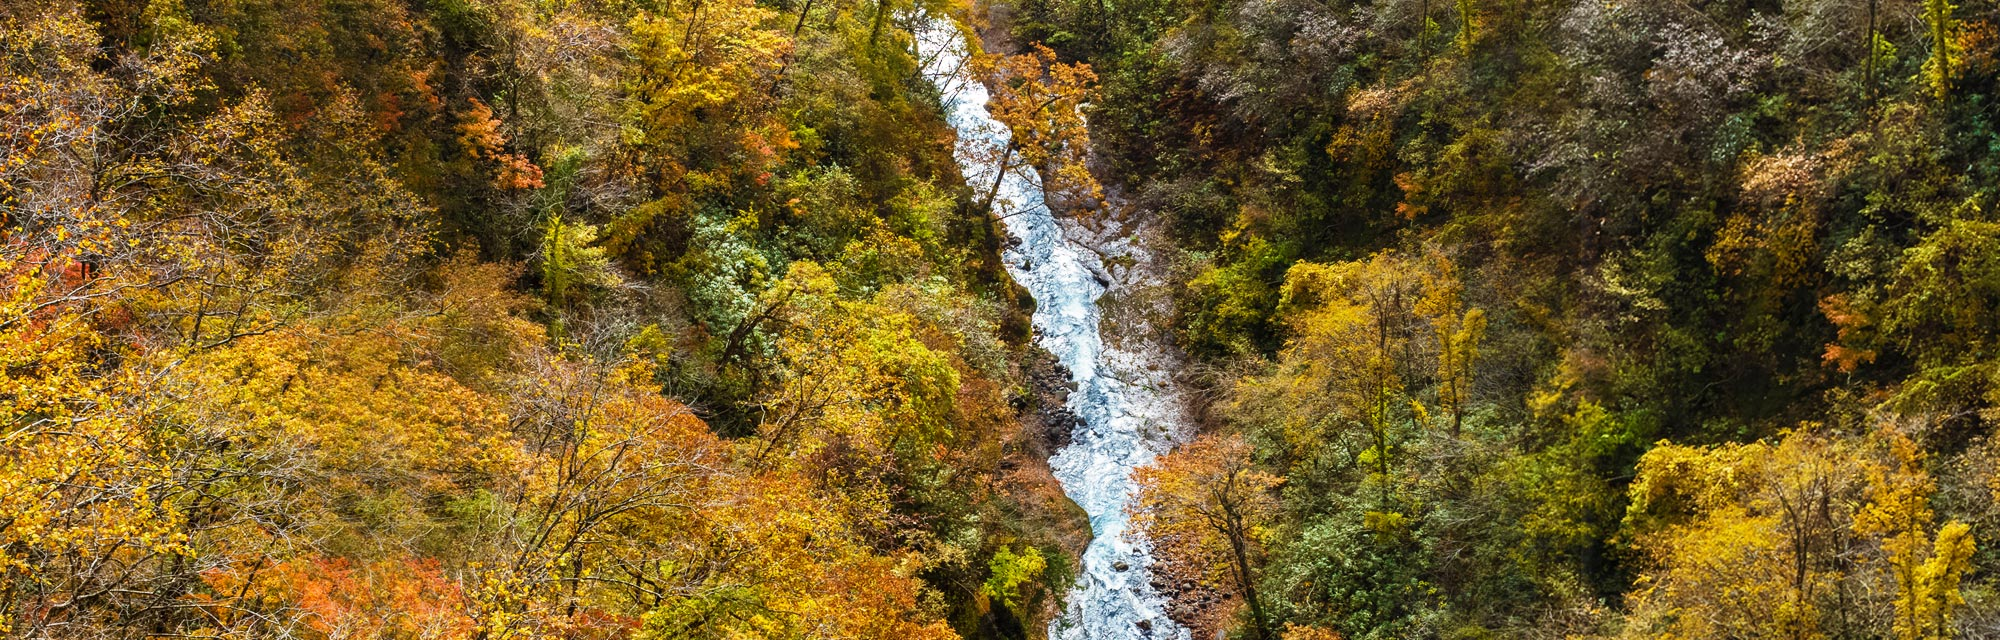 Noboribetsu Japan  city photo : Noboribetsu Primeval Forest Japan National Tourism Organization